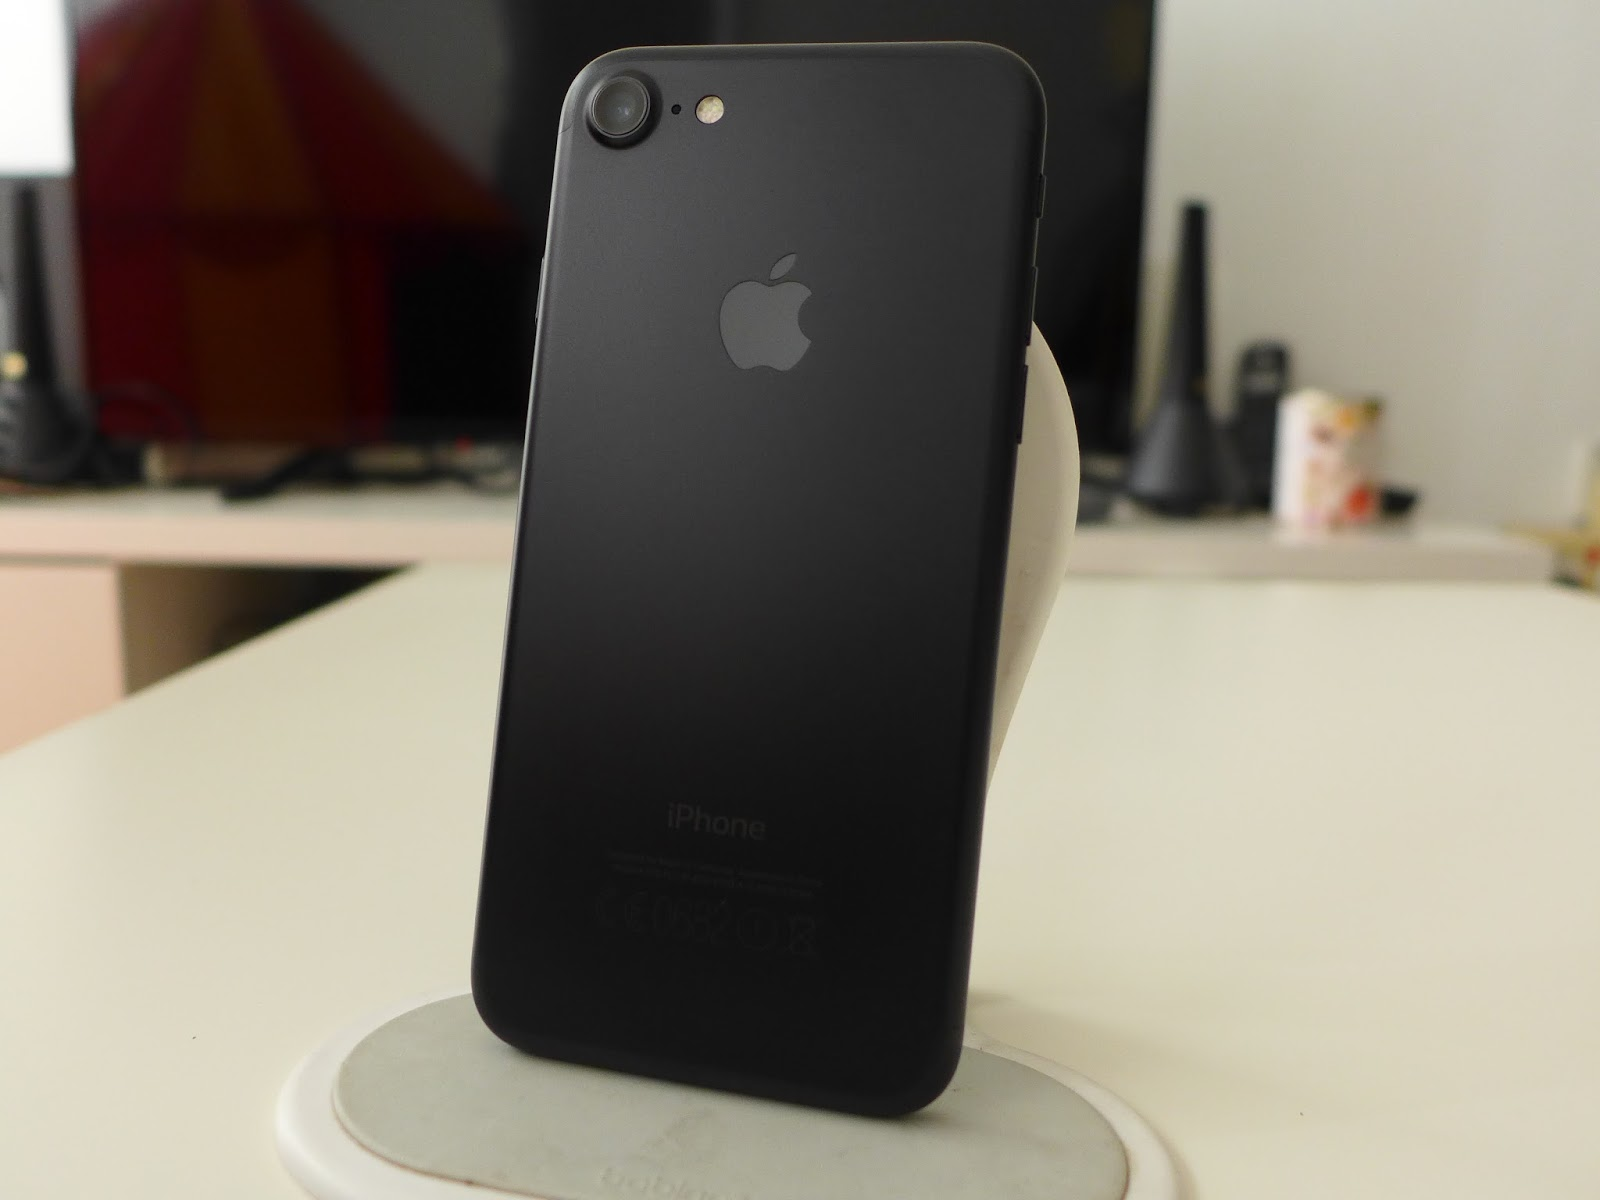 afifplc: iPhone 7 review